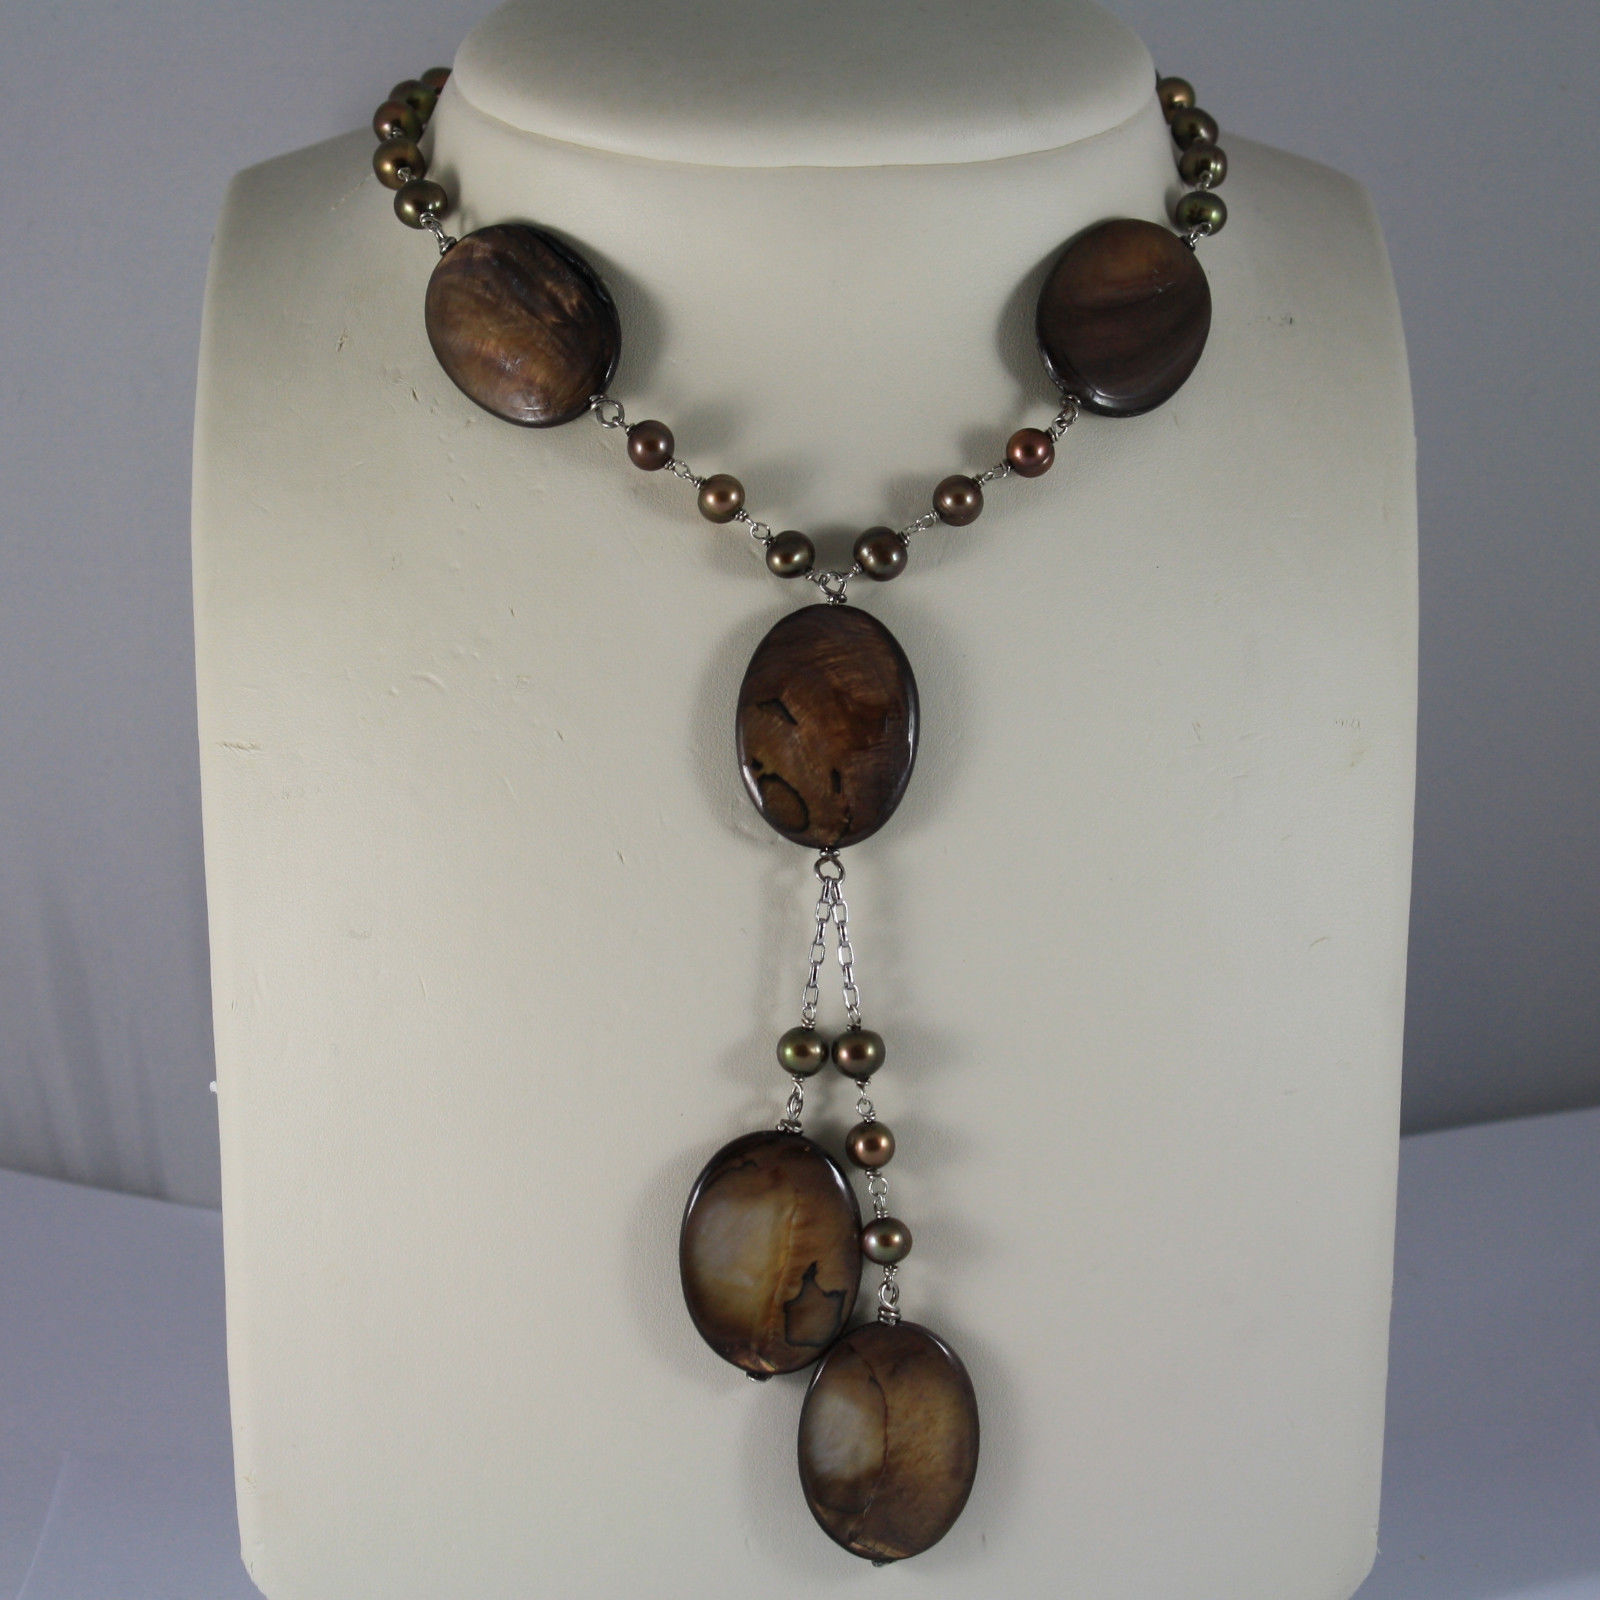 .925 RHODIUM SILVER NECKLACE WITH BROWN PEARLS AND BROWN MOTHER OF PEARL